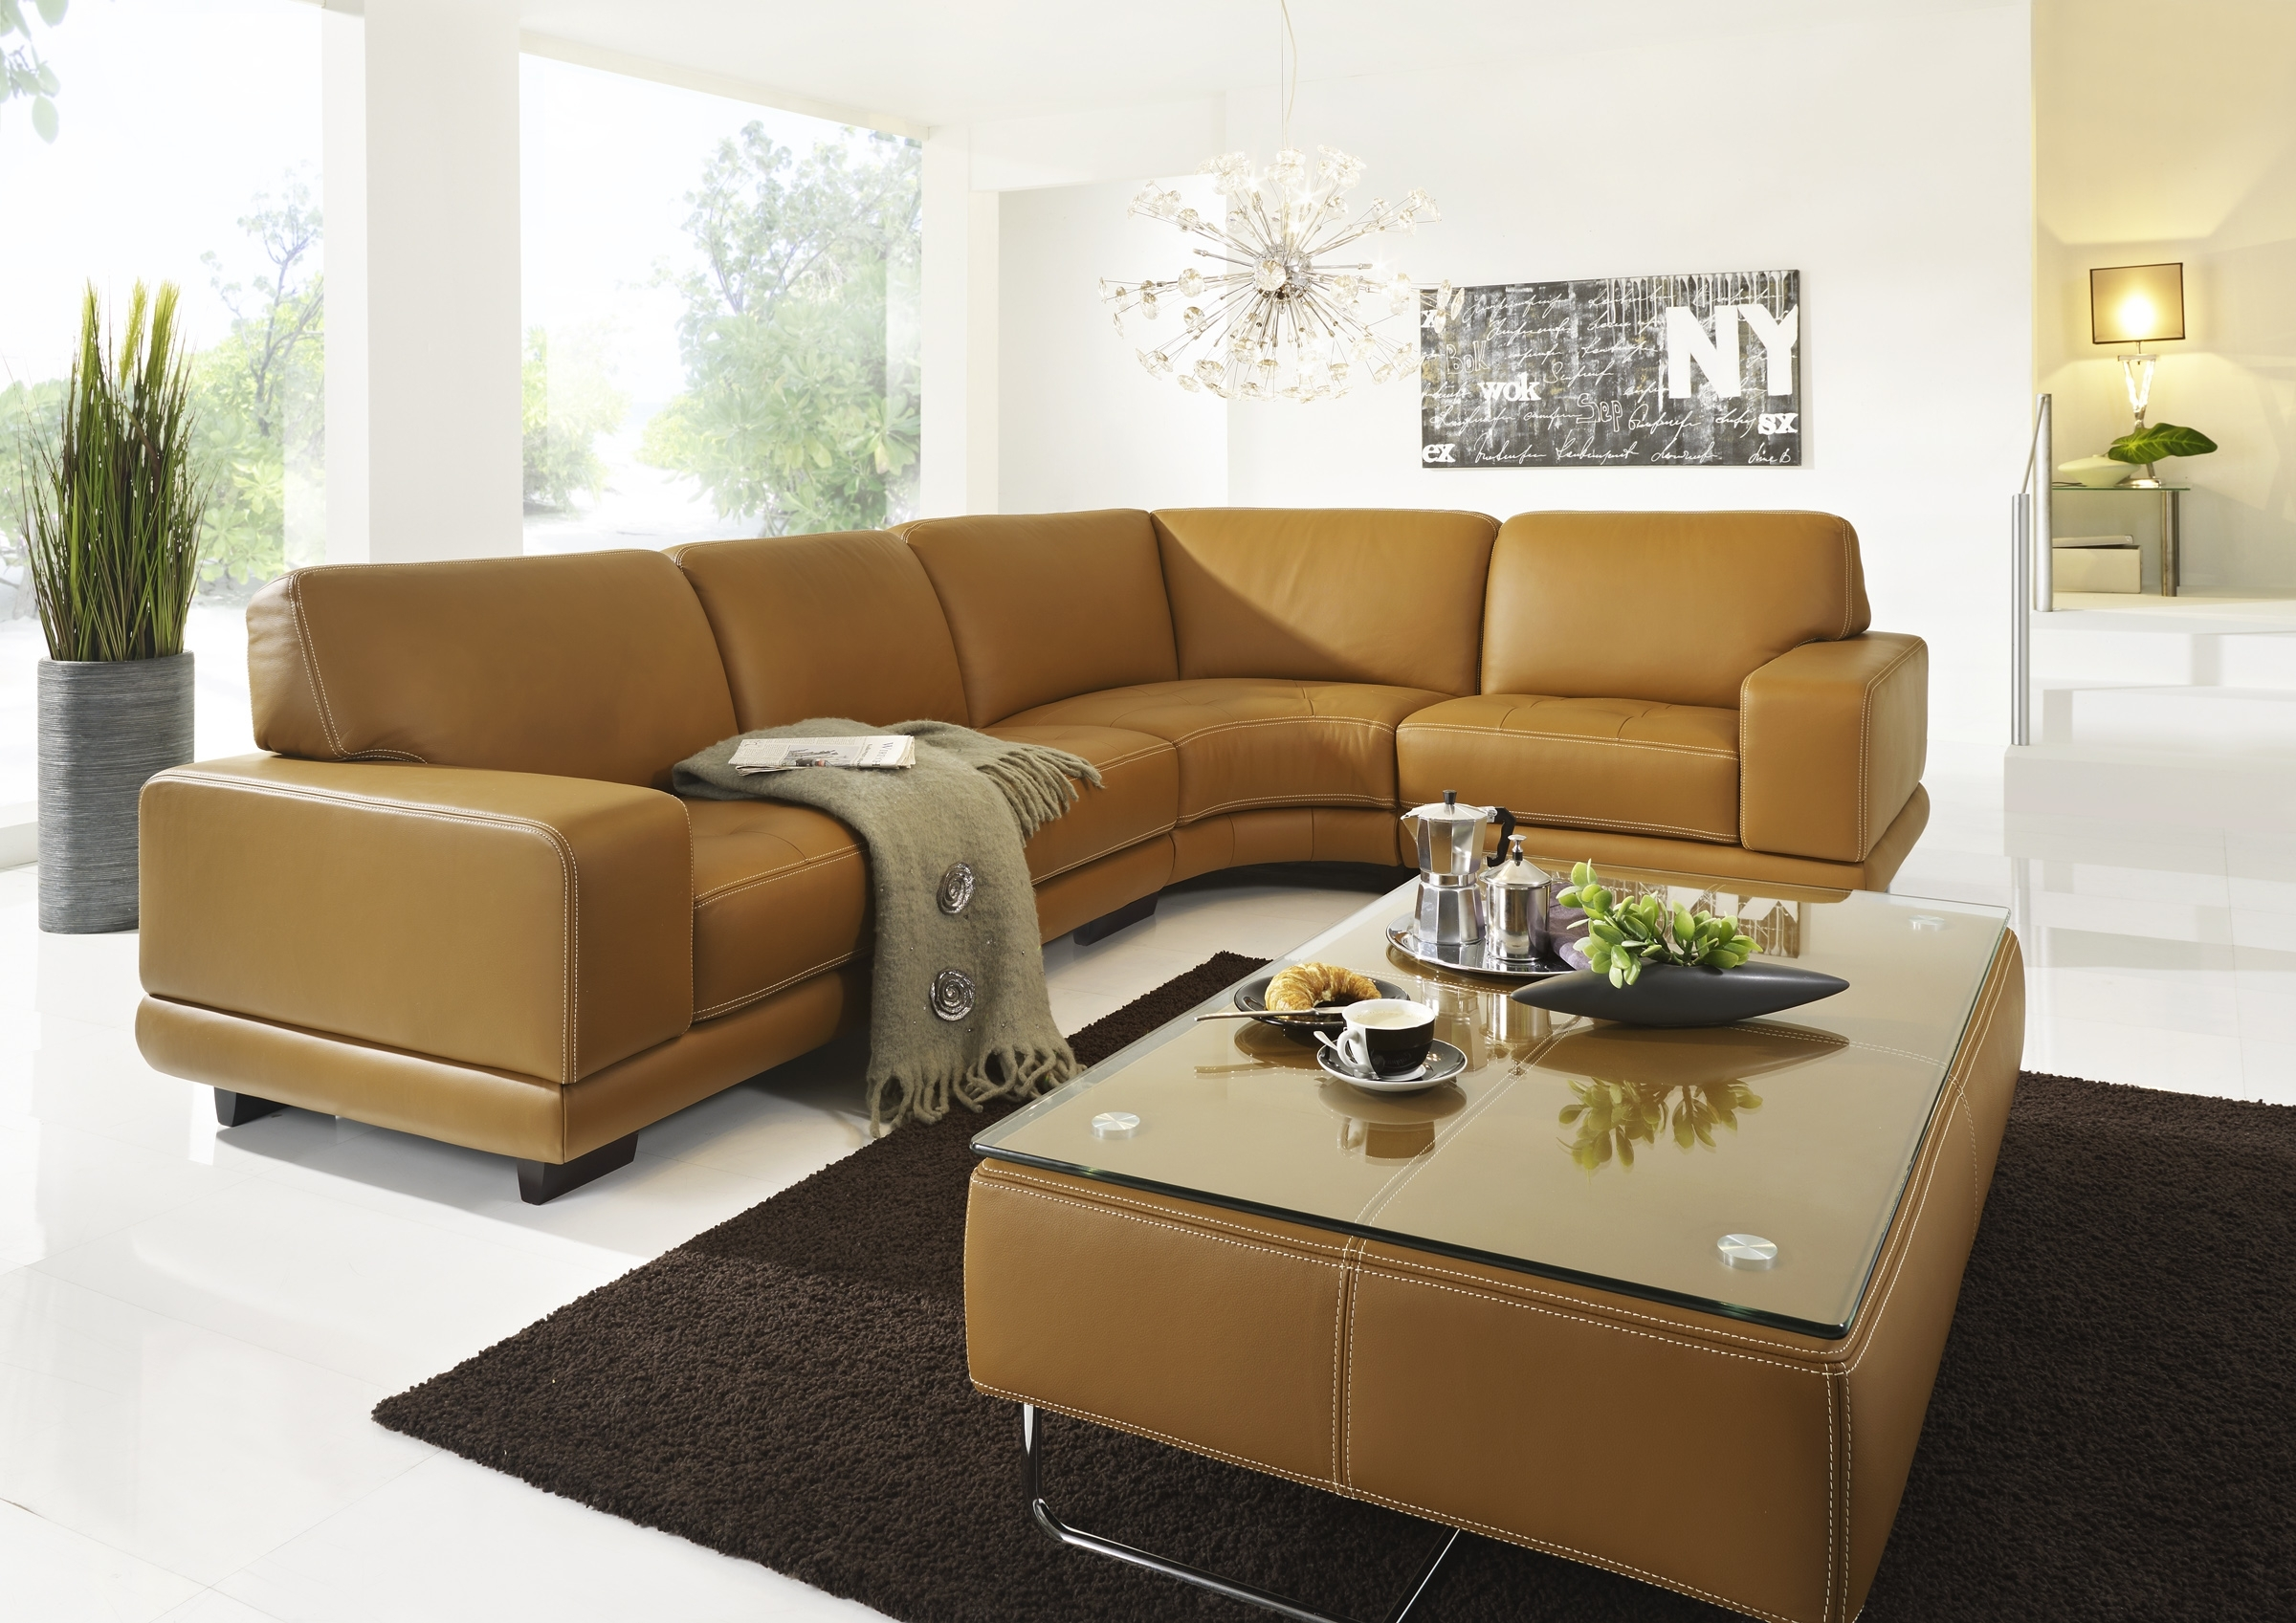 Sectional Sofas Grand Rapids Mi | Ezhandui Regarding Grand Rapids Mi Sectional Sofas (Image 10 of 10)